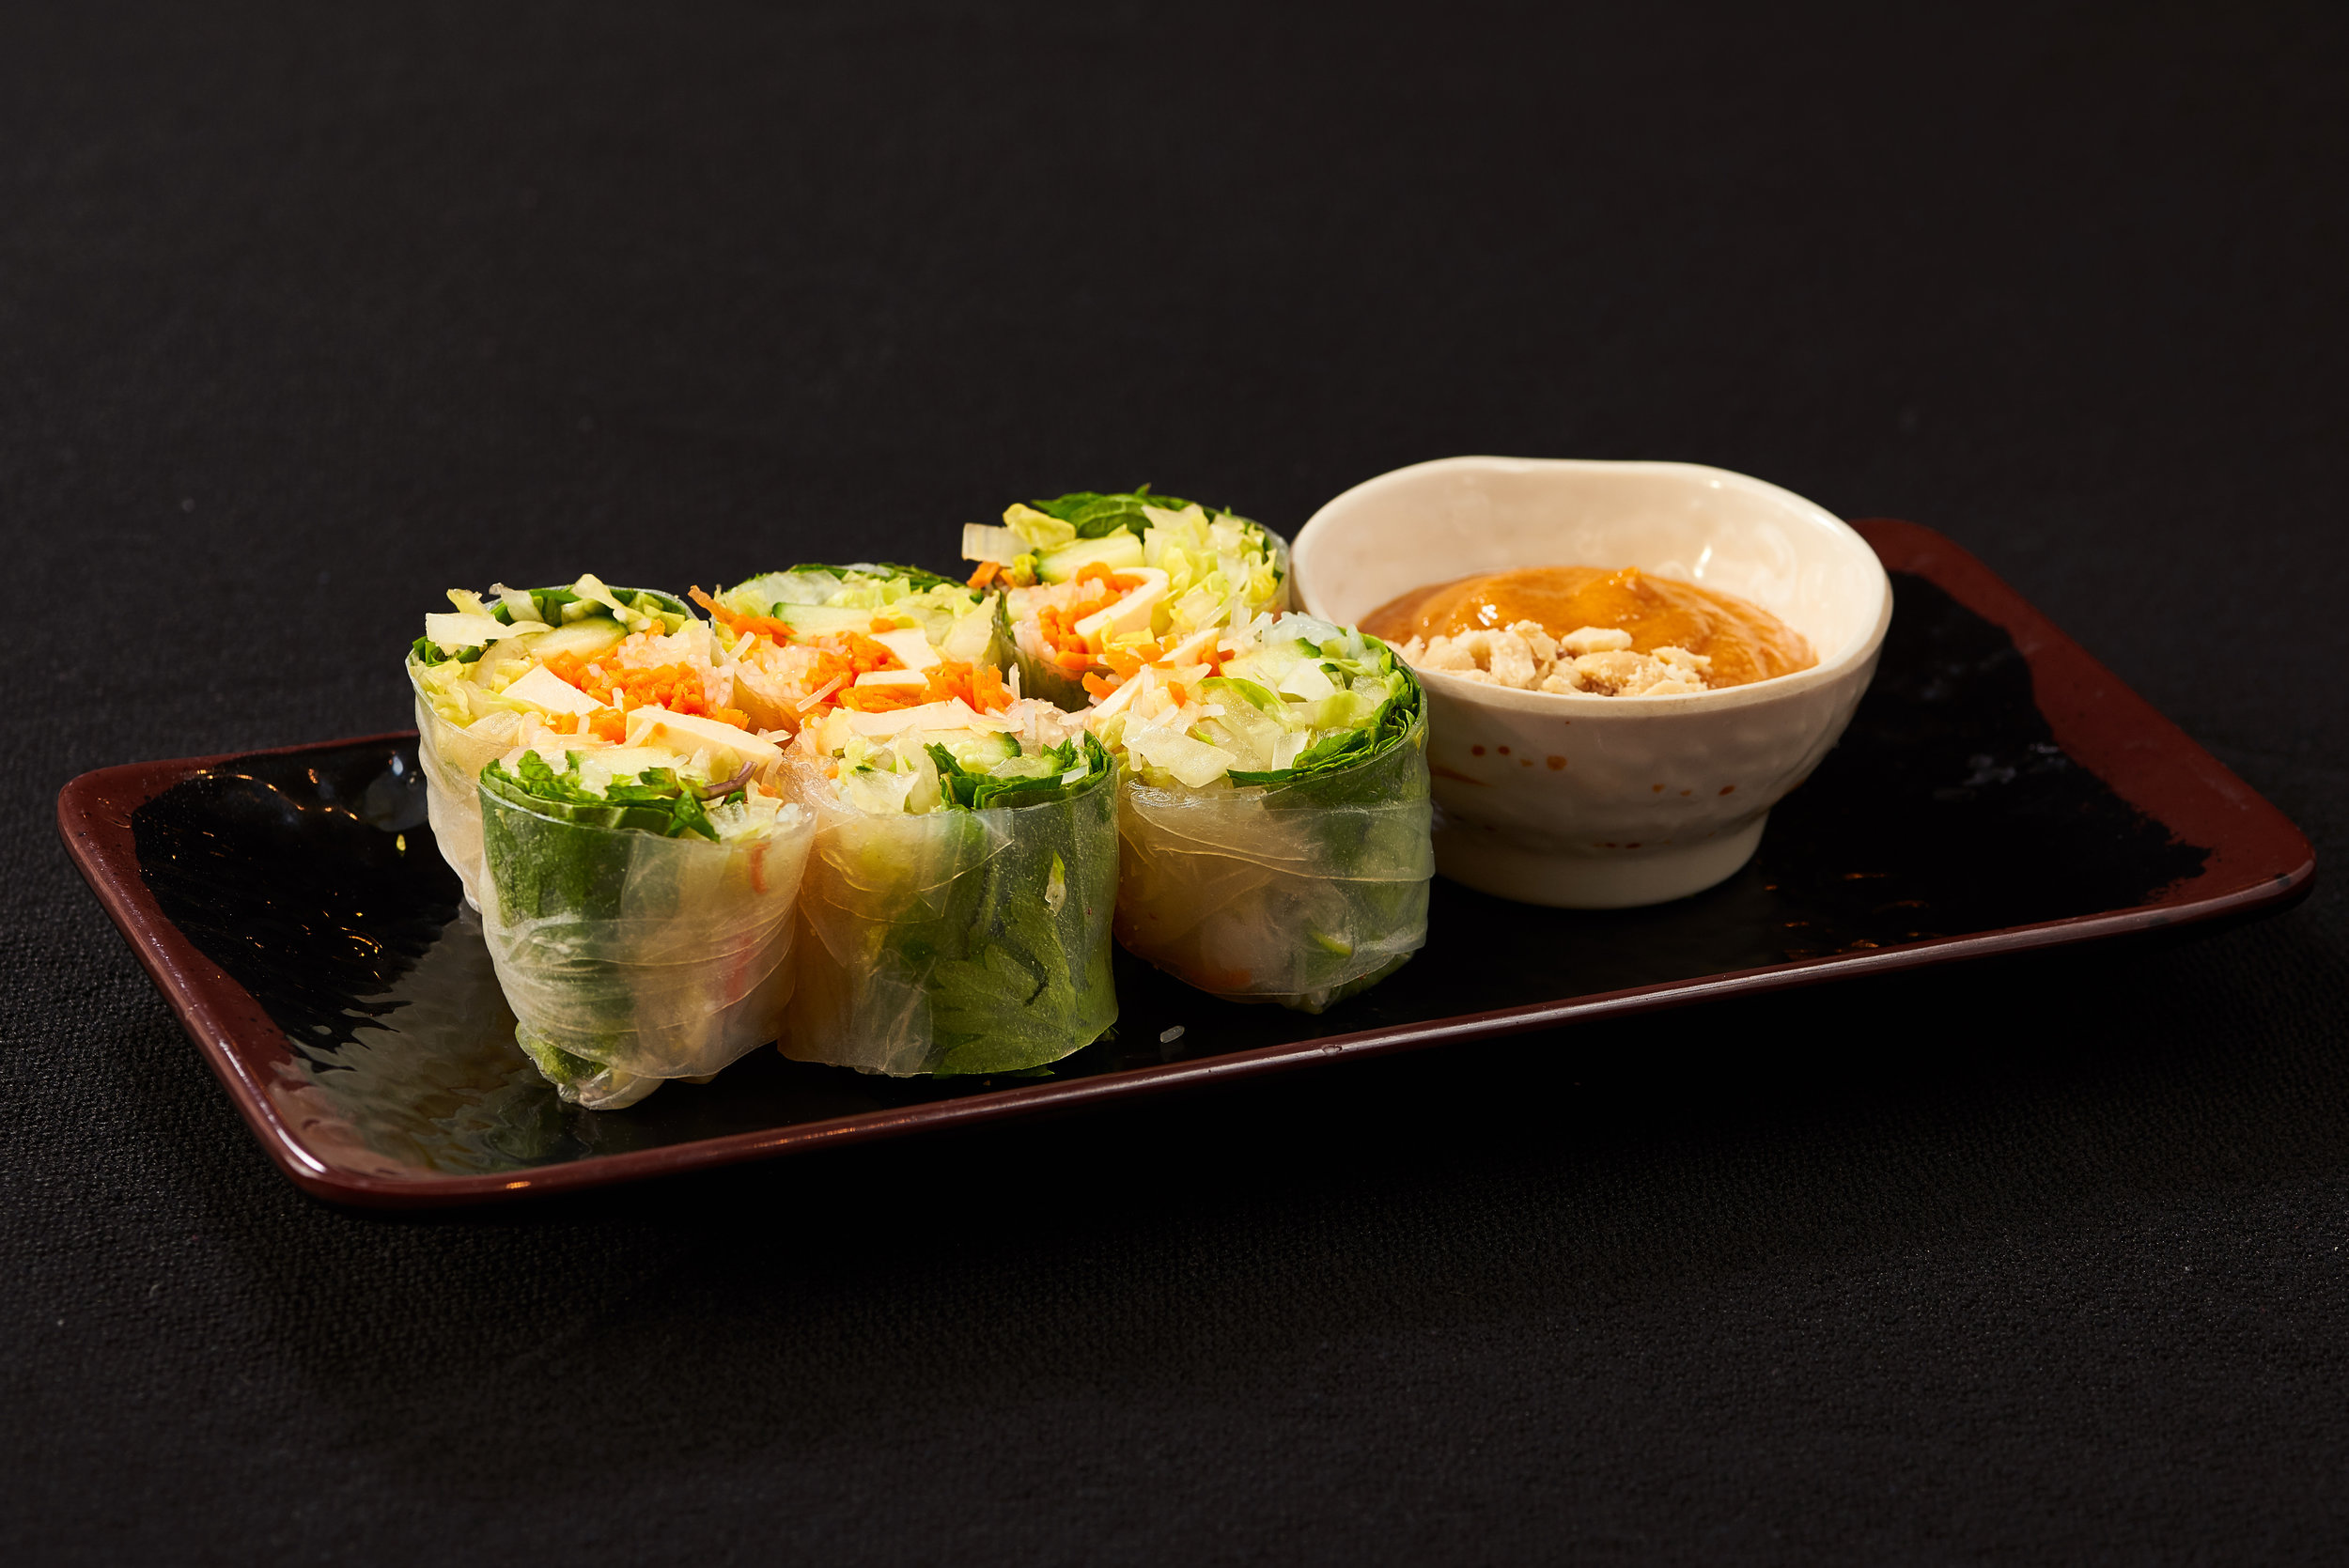 Professional food photo of spring vegetable rolls. Commercial photography